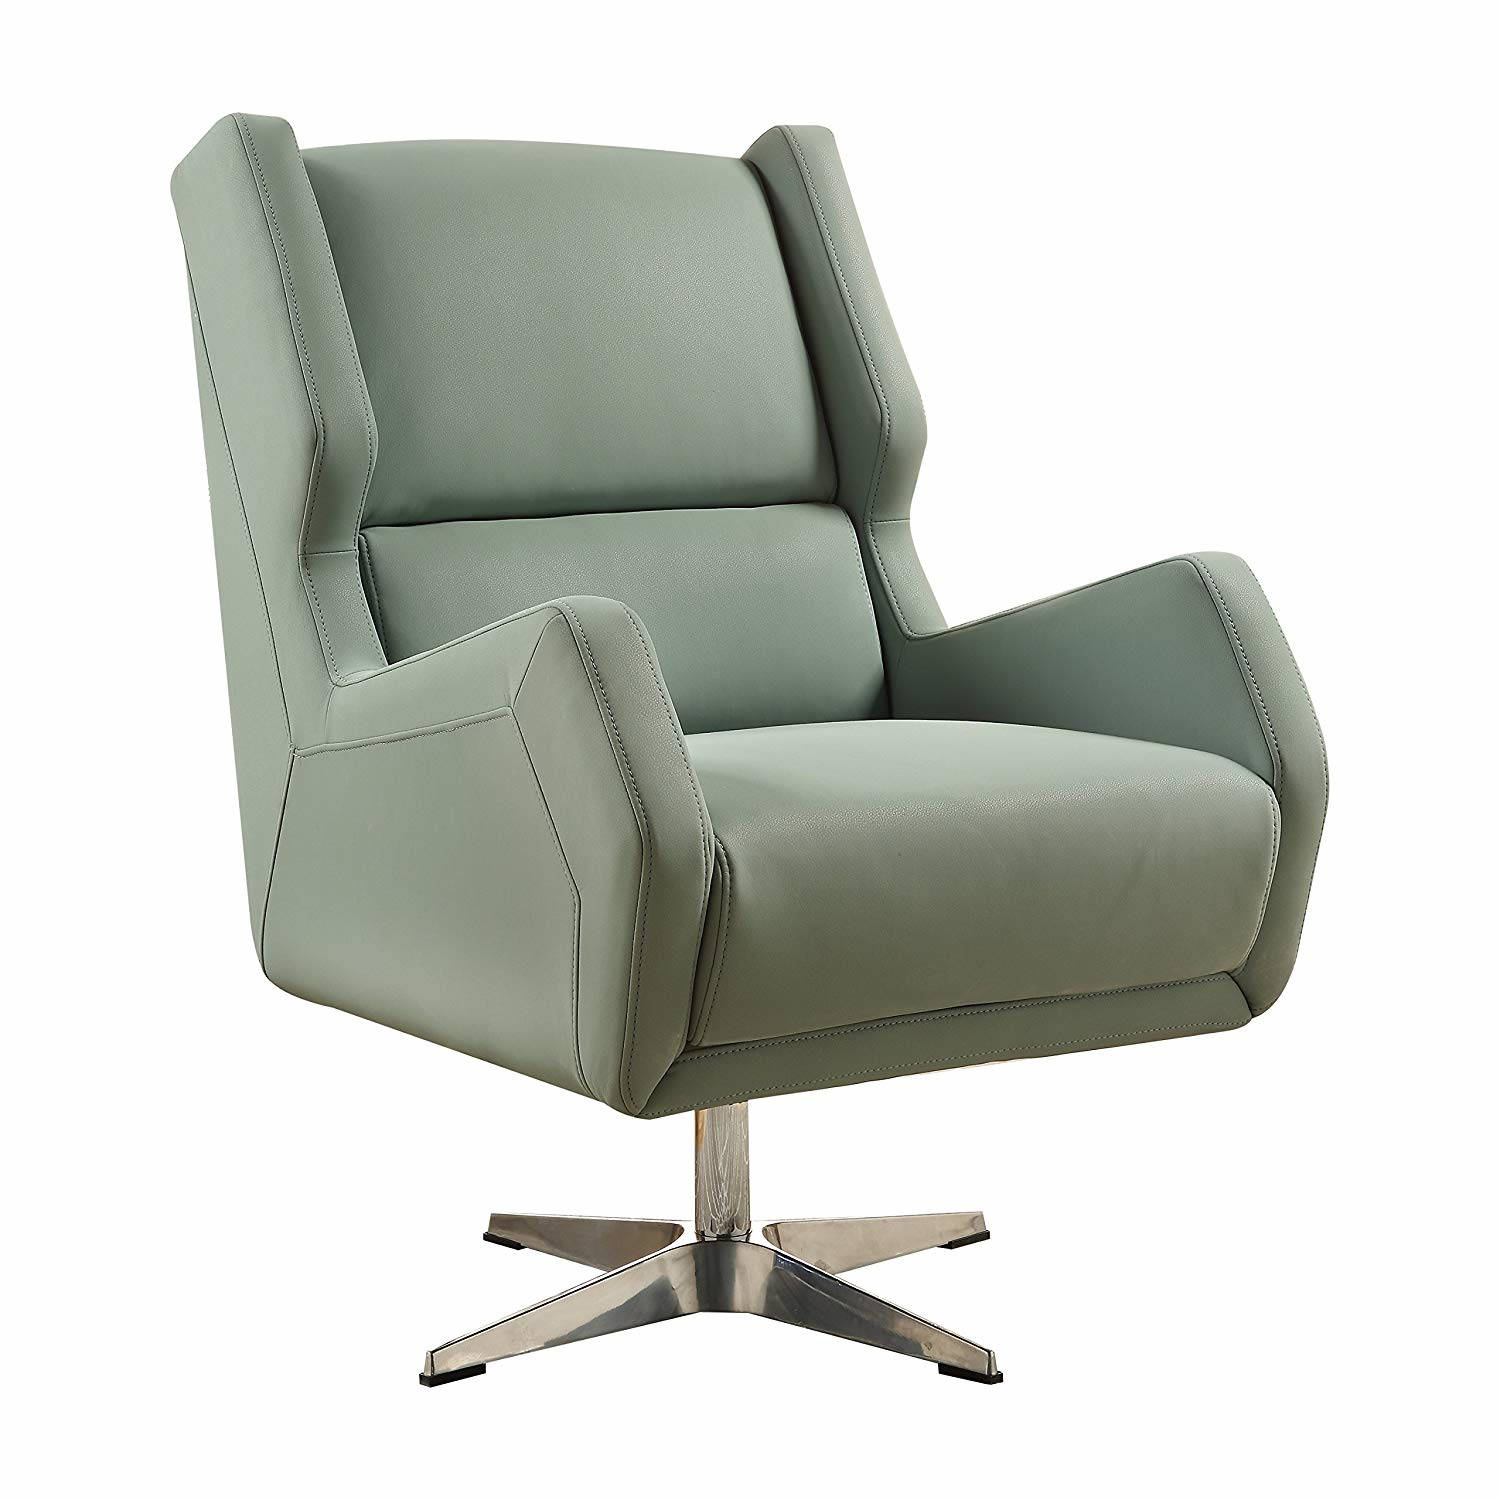 Surprising Acme Furniture Eudora Ii Gray Accent Chair Gmtry Best Dining Table And Chair Ideas Images Gmtryco